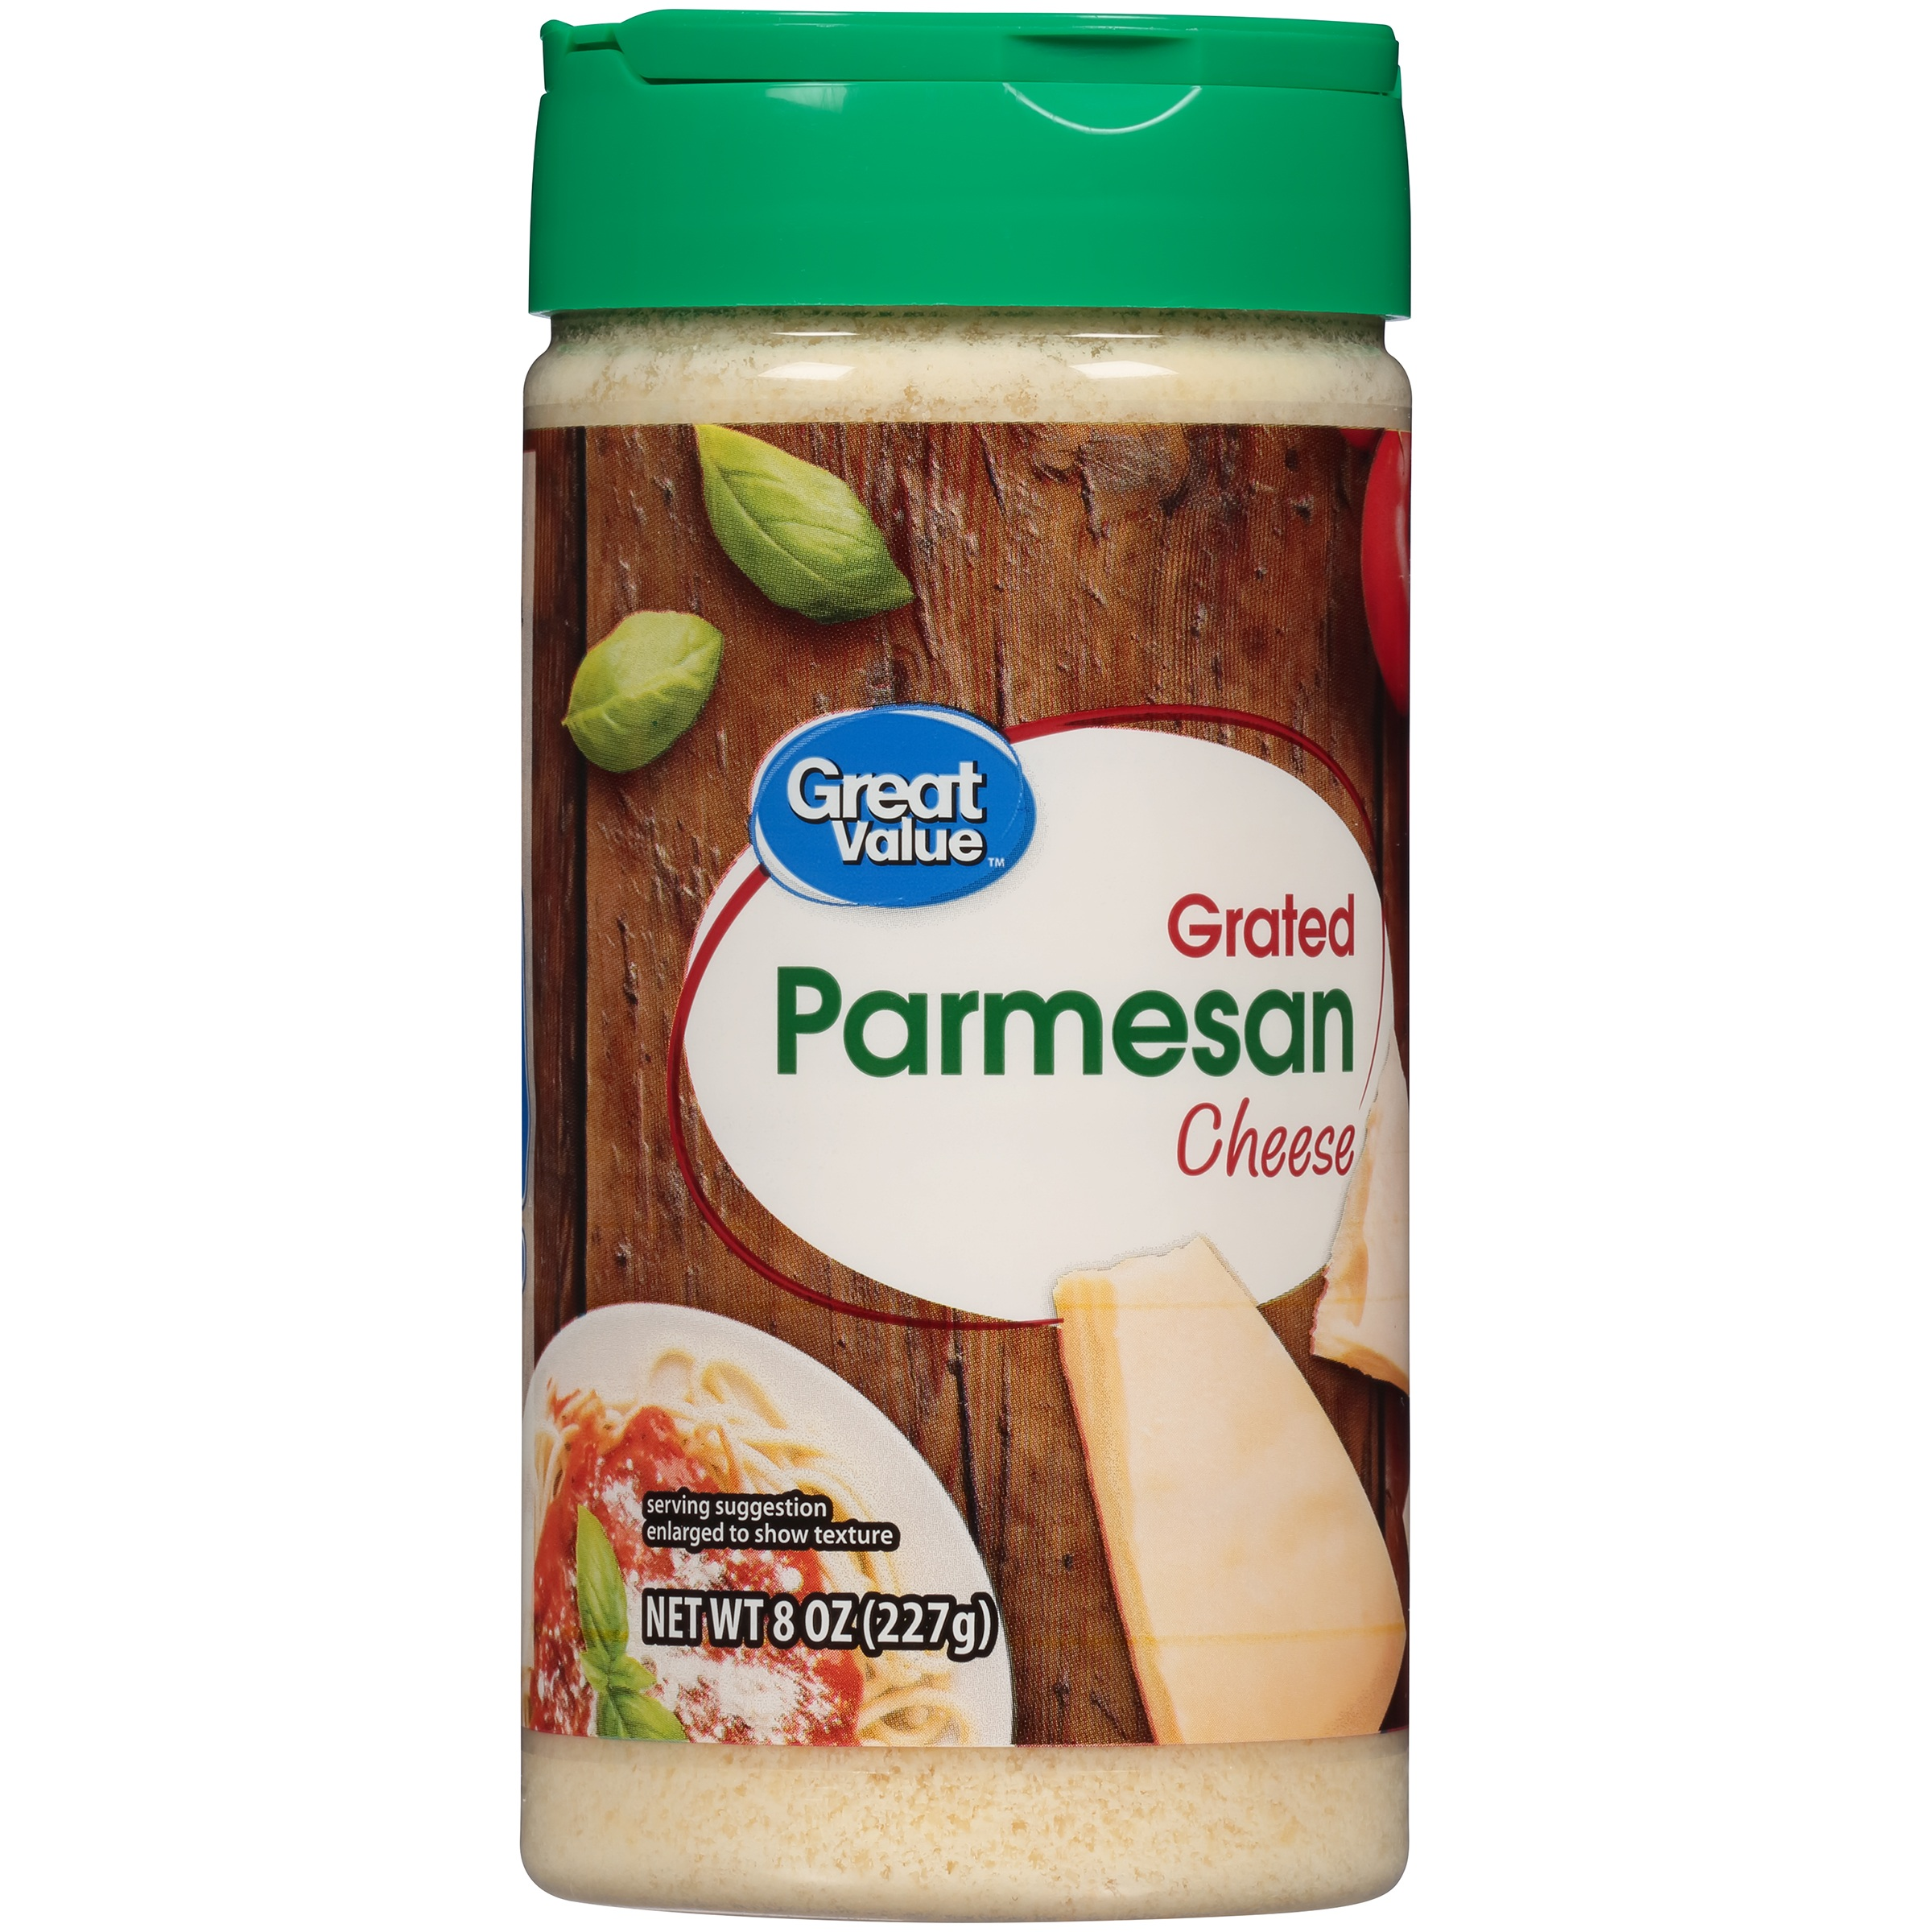 Great Value Grated Parmesan Cheese, 8 oz by Wal-Mart Stores, Inc.